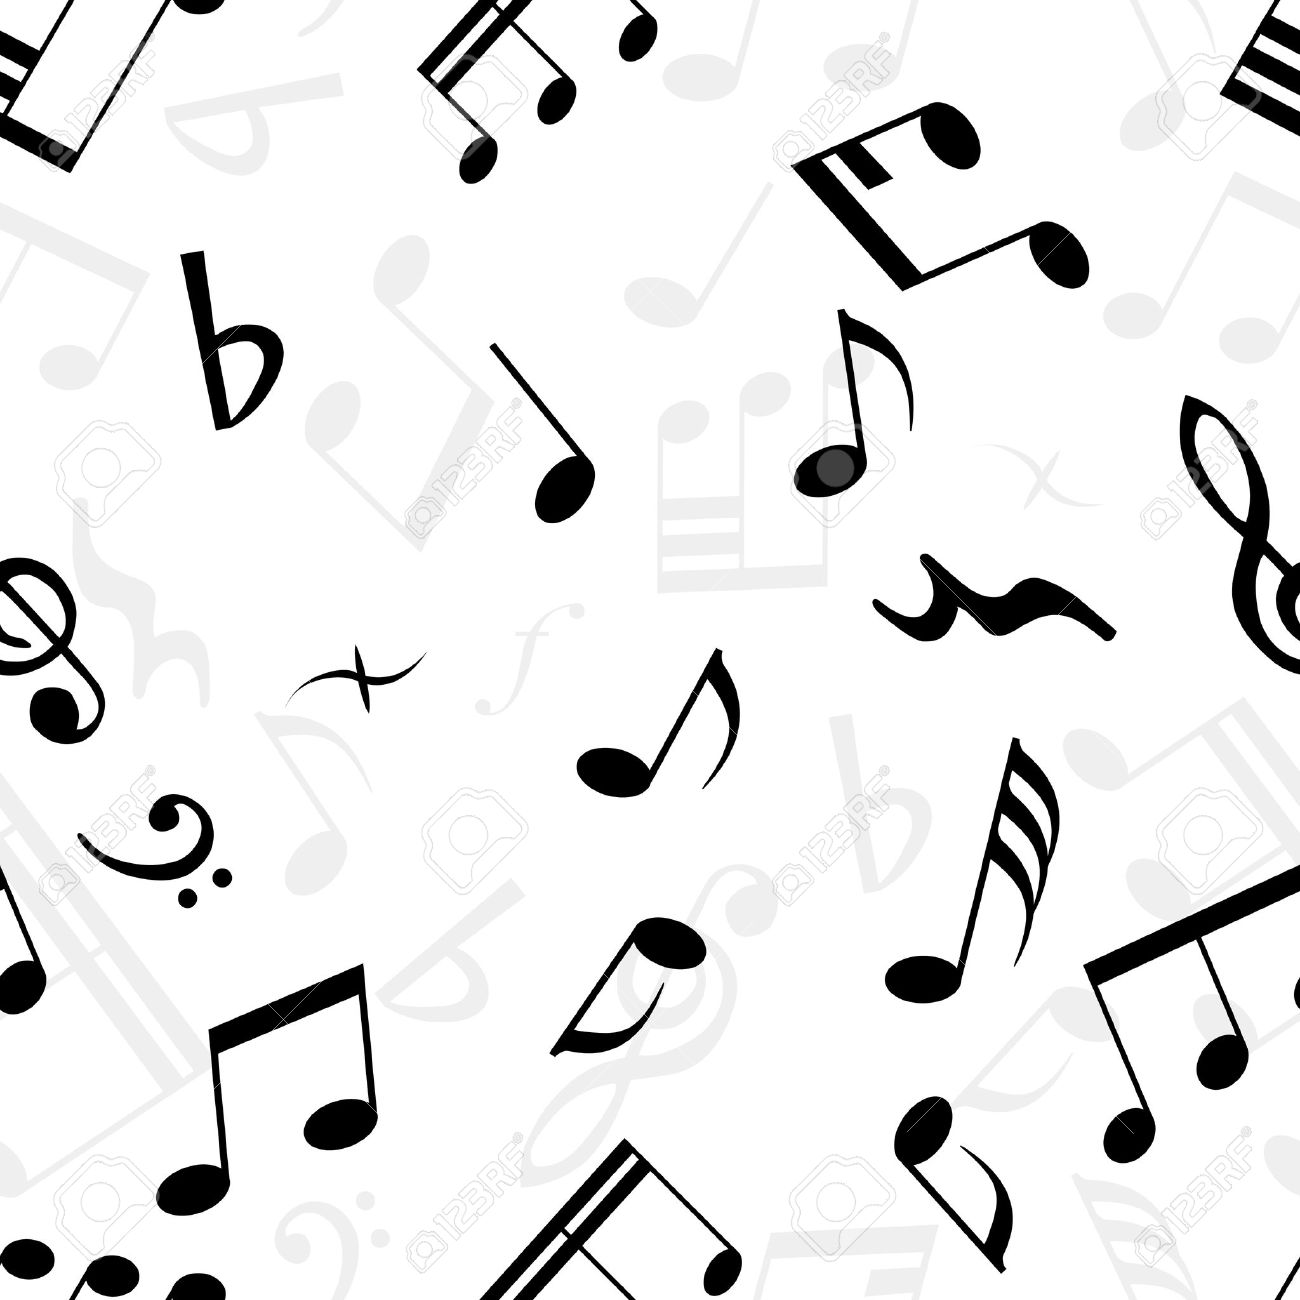 seamless musical notes texture for easy making seamless pattern rh 123rf com Music Notes Graphics Music Notes Vector Art Free